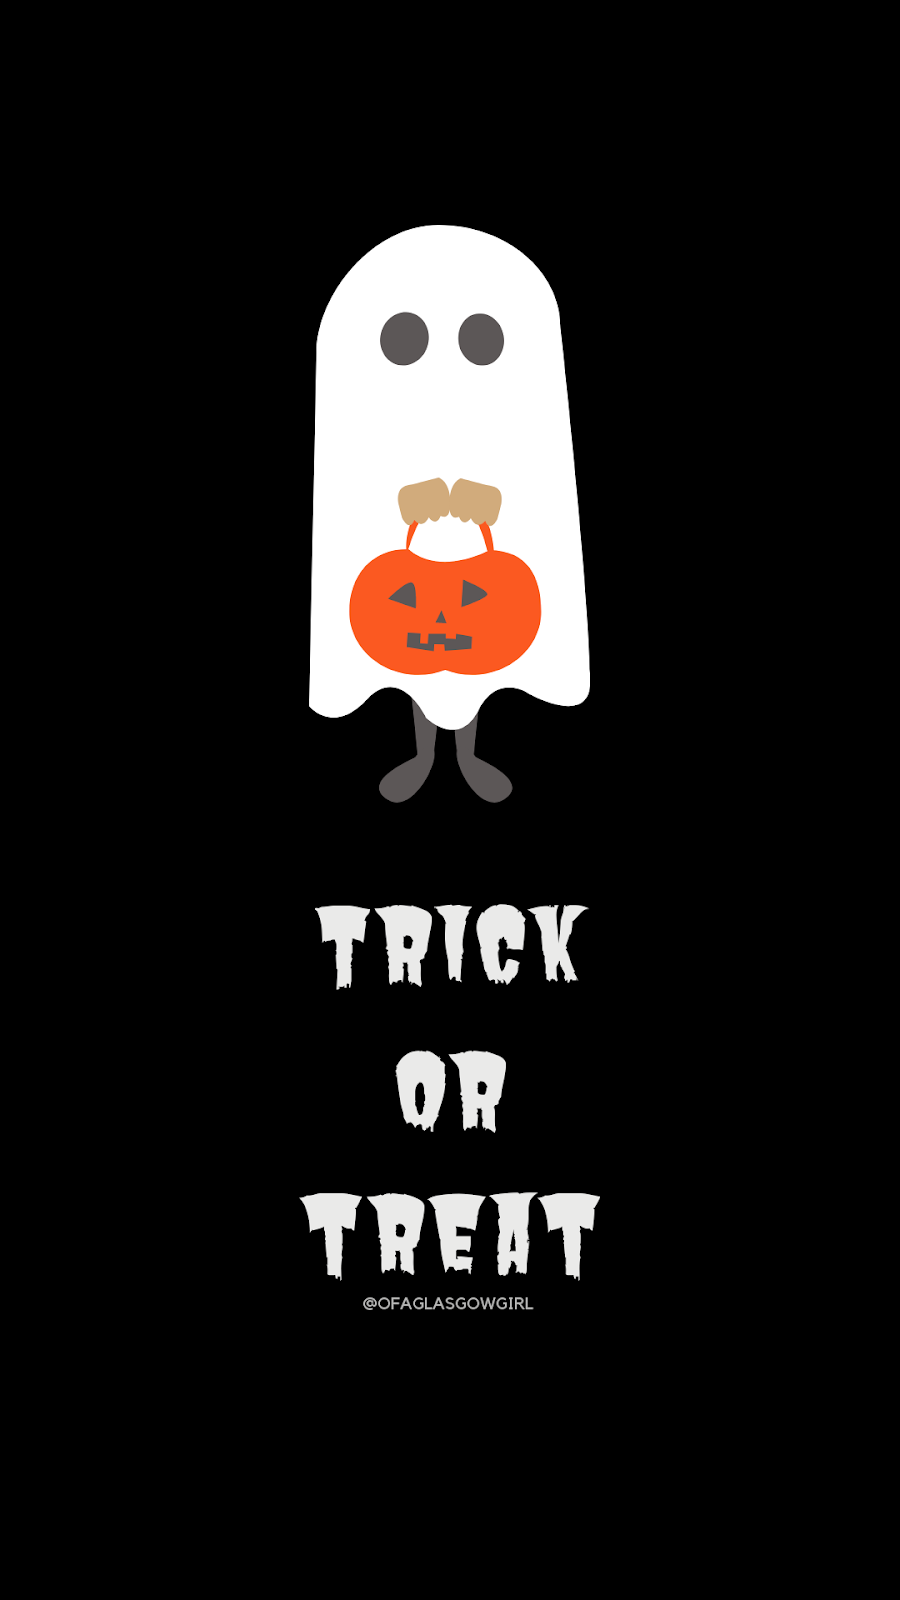 Free halloween inspired graphic on Thelifeofaglasgowgirl.co.uk - Someone in a ghost costume (cartoon drawing) with Trick or treat in writing underneath it by @ofaglasgowgirl